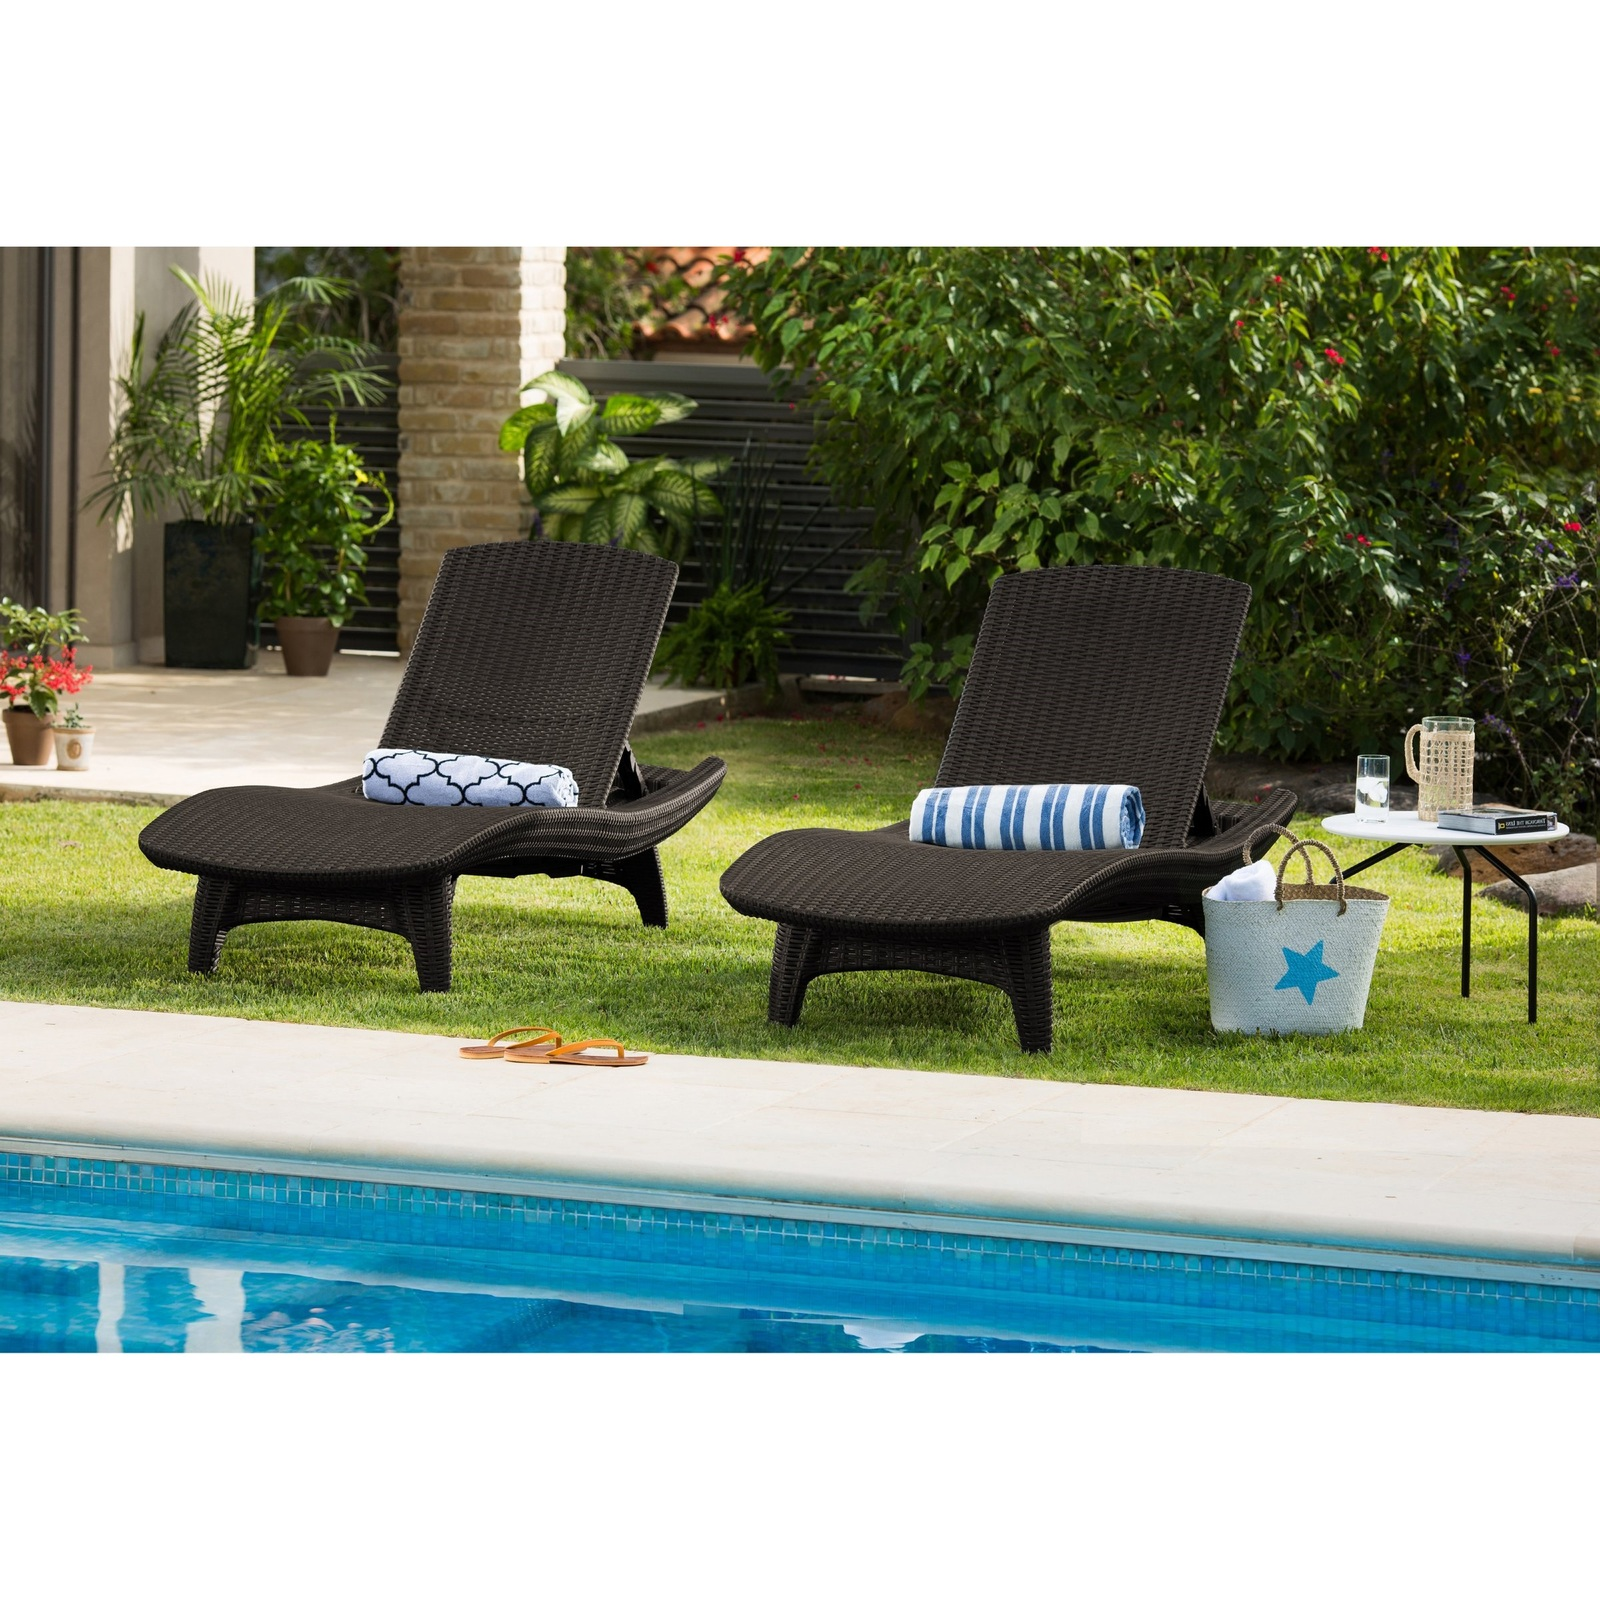 Chaise lounges table set outdoor patio pool furniture 3 pc for Garden pool loungers